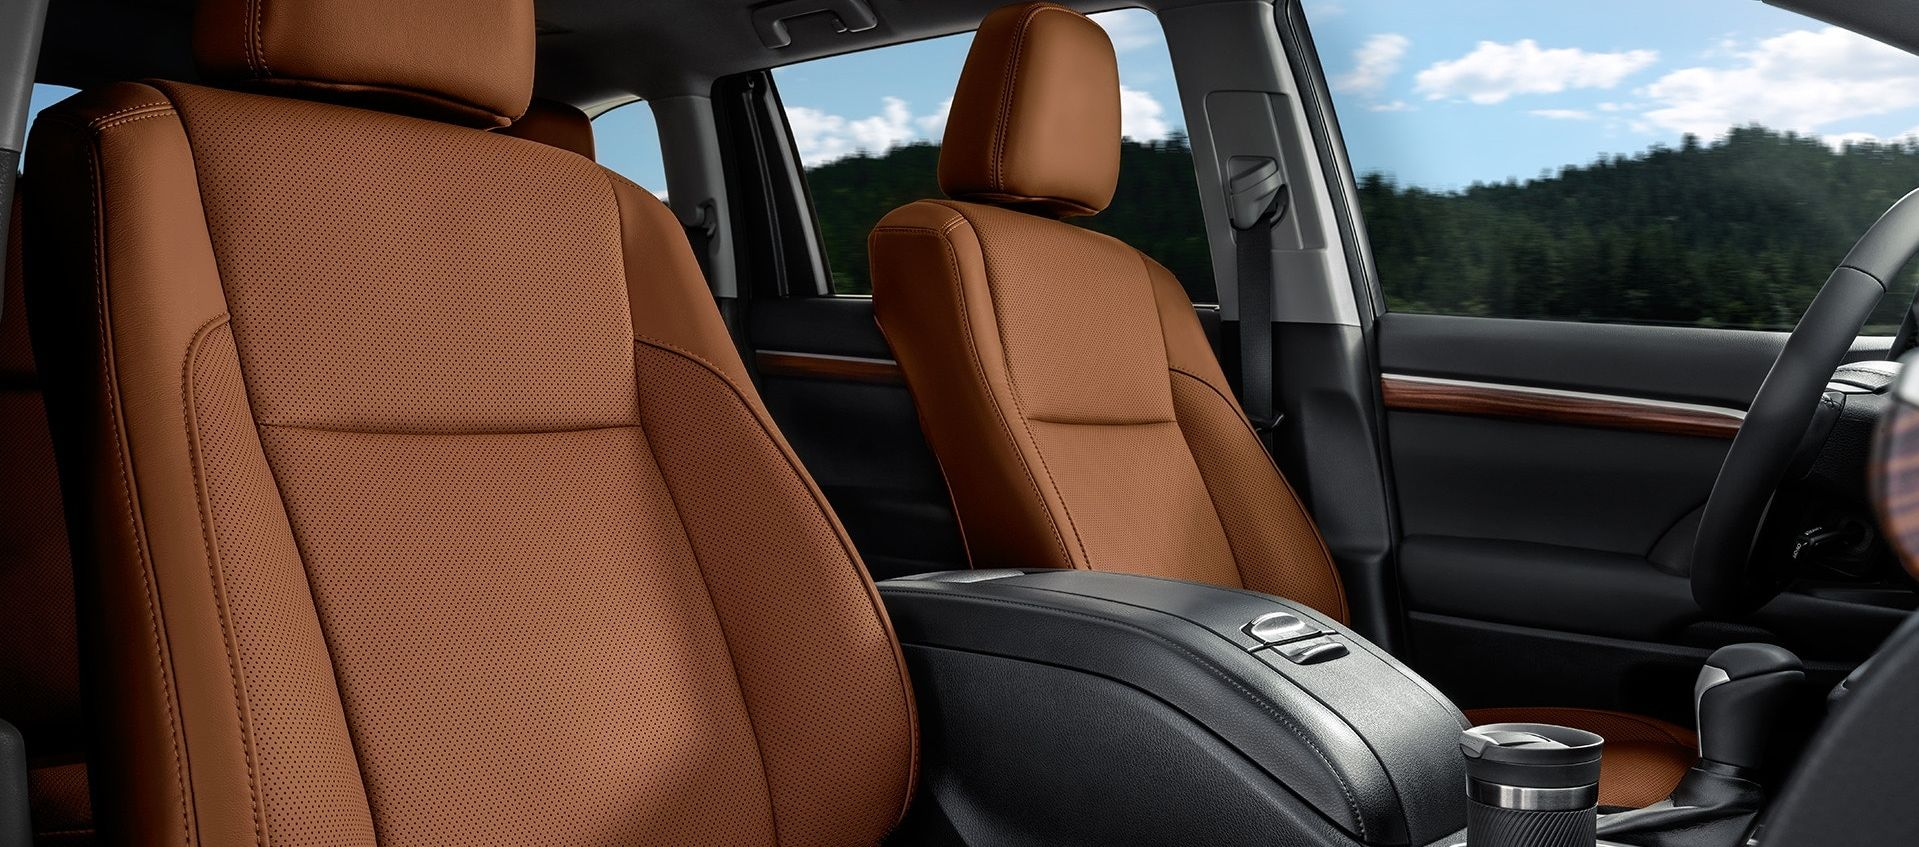 Luxurious Seating in the 2019 Toyota Highlander